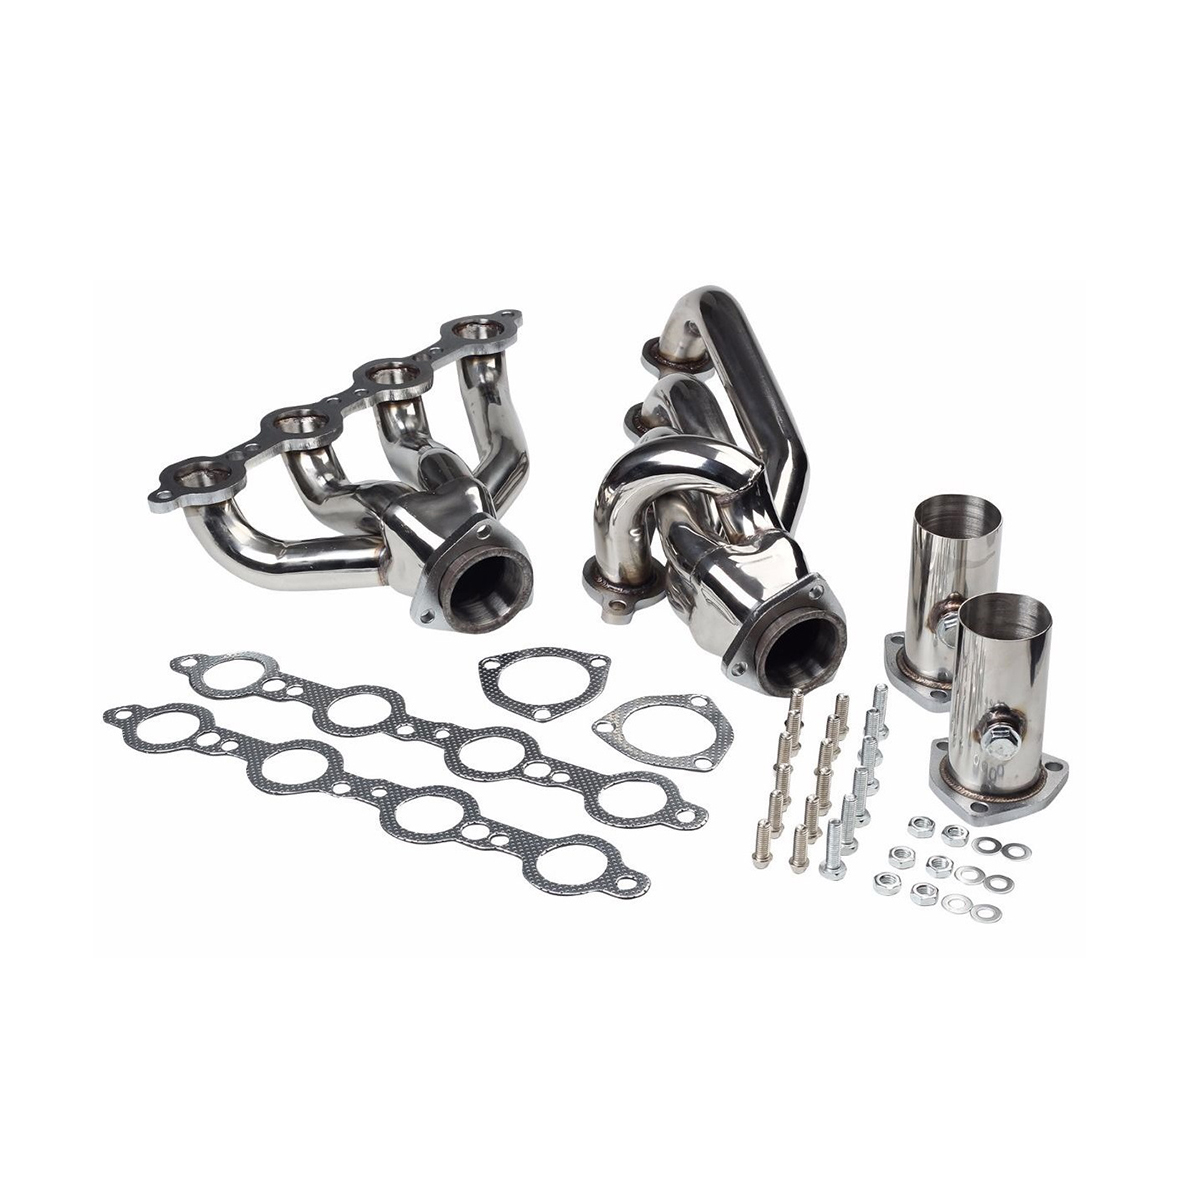 Exhaust Manifold Suitable For Big Block Chevy